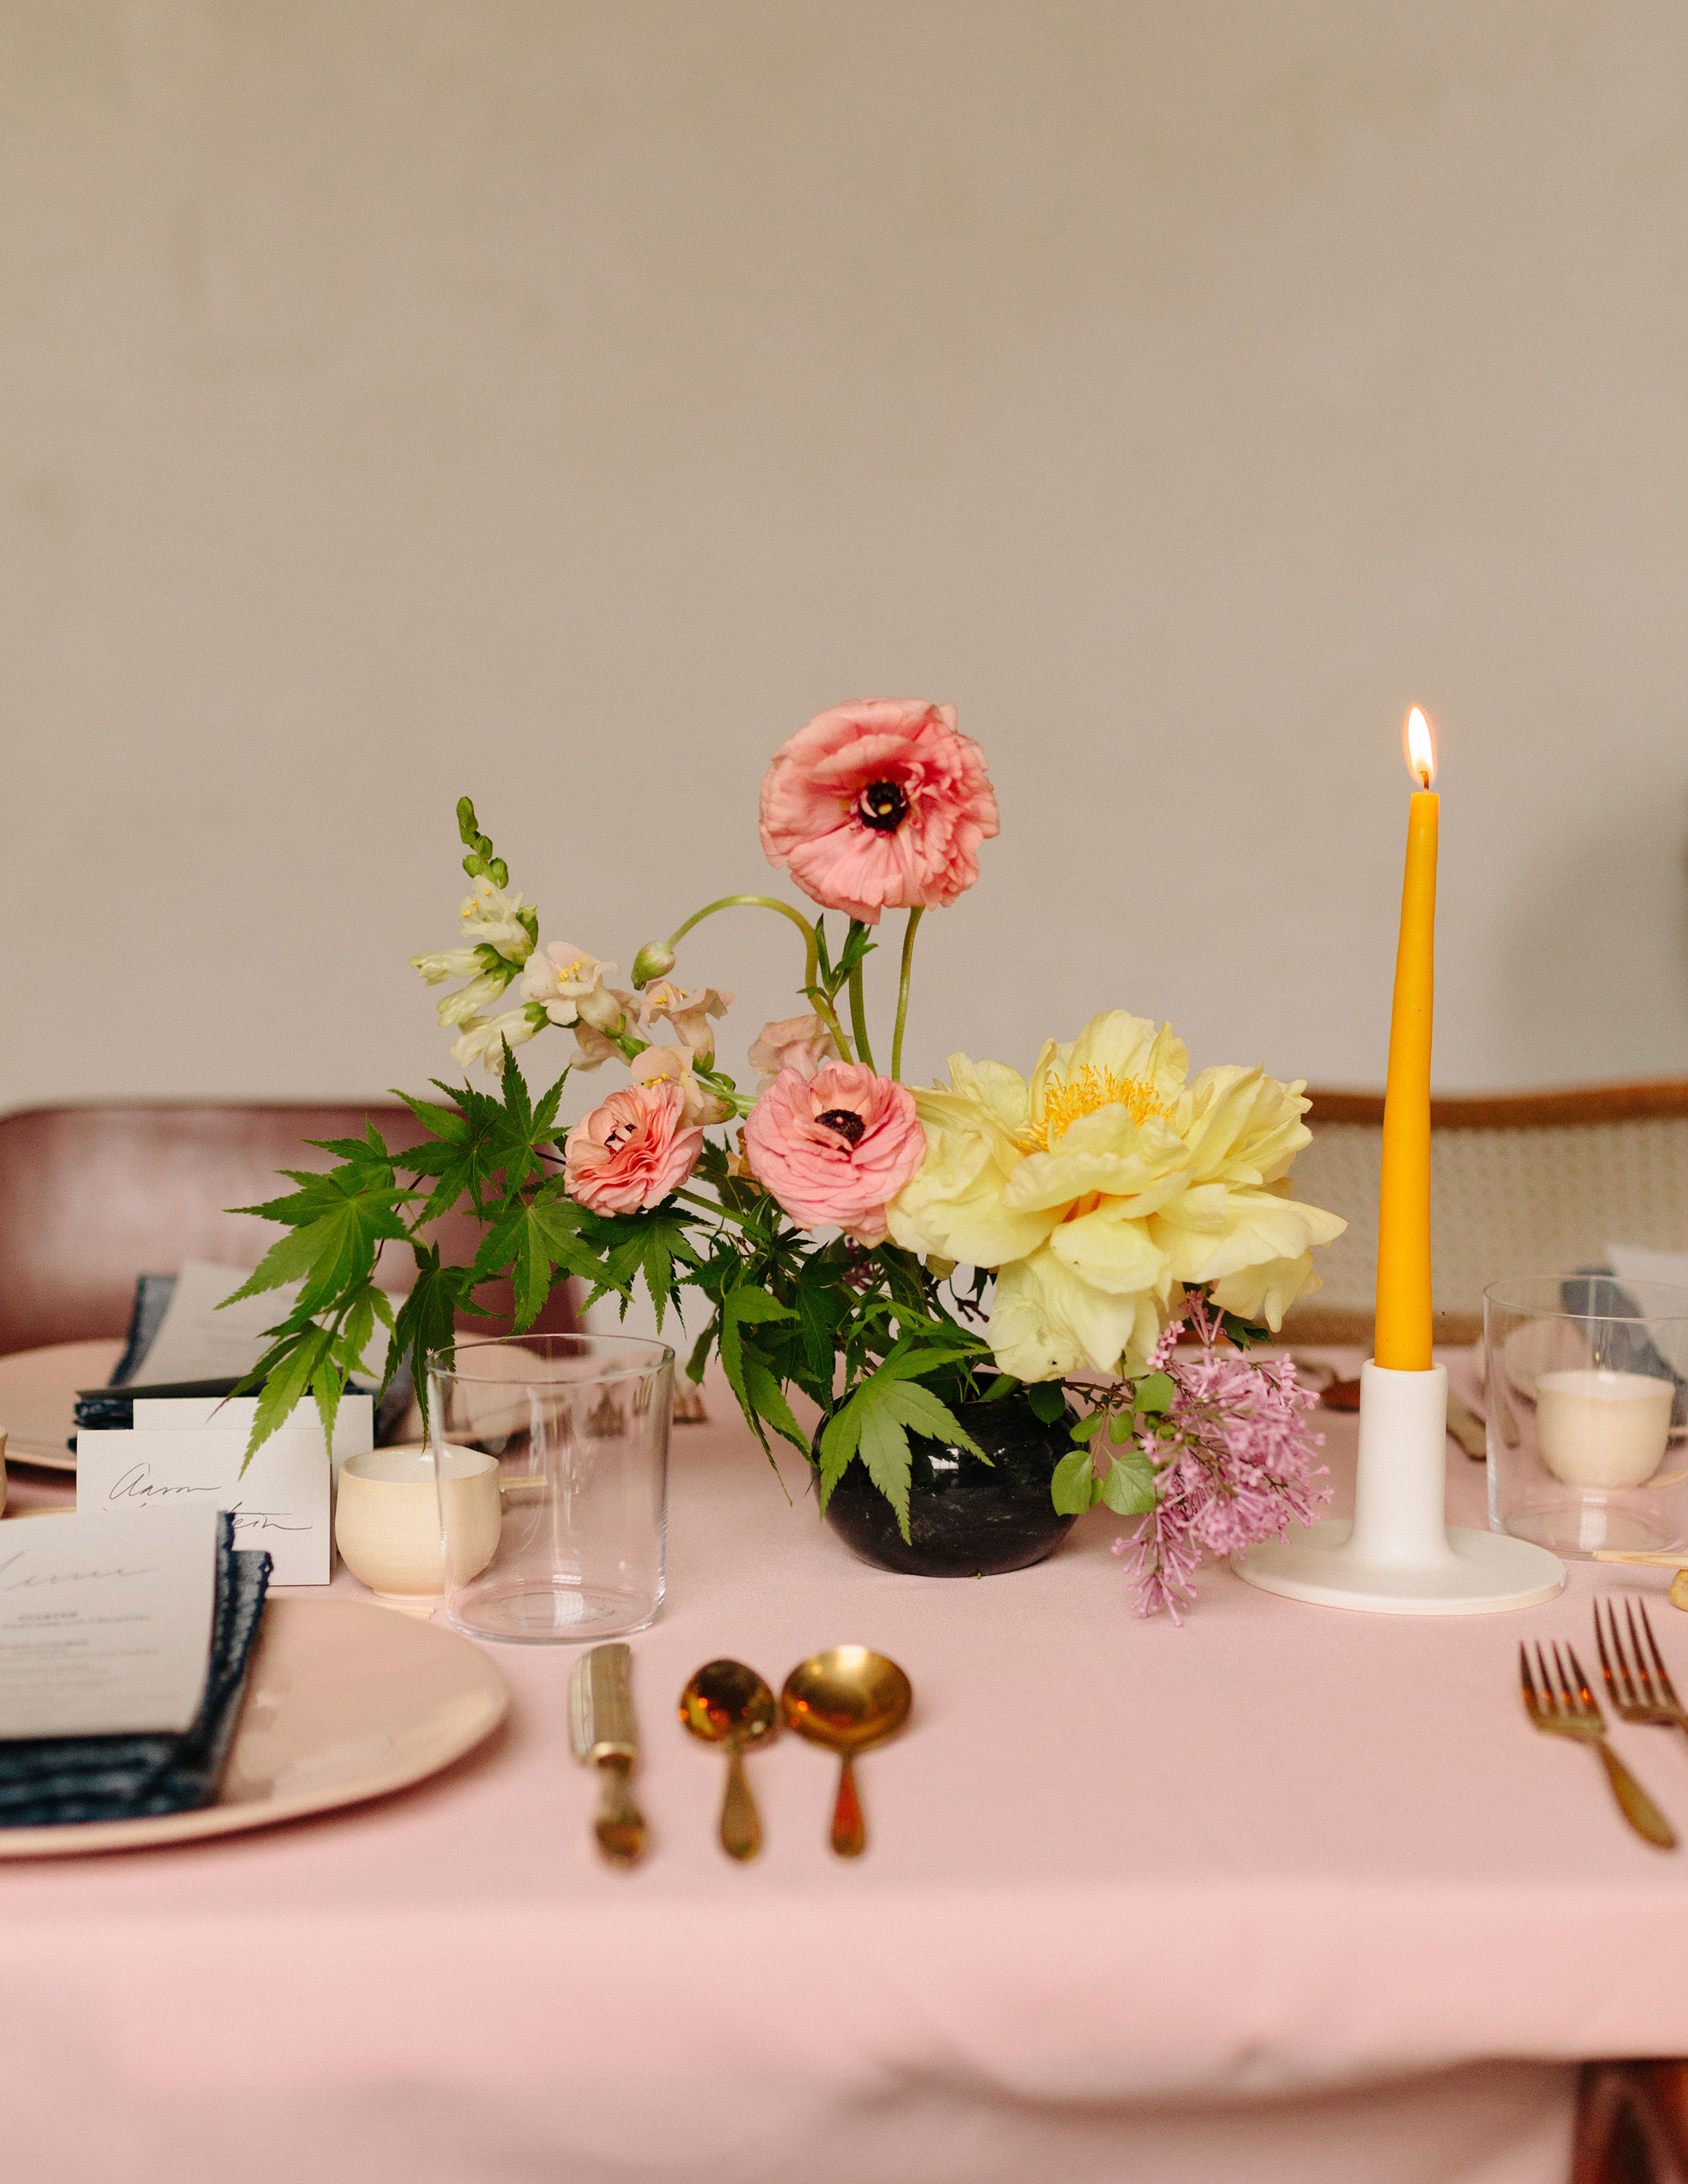 11-provisions-citymeals-mothers-day.jpg